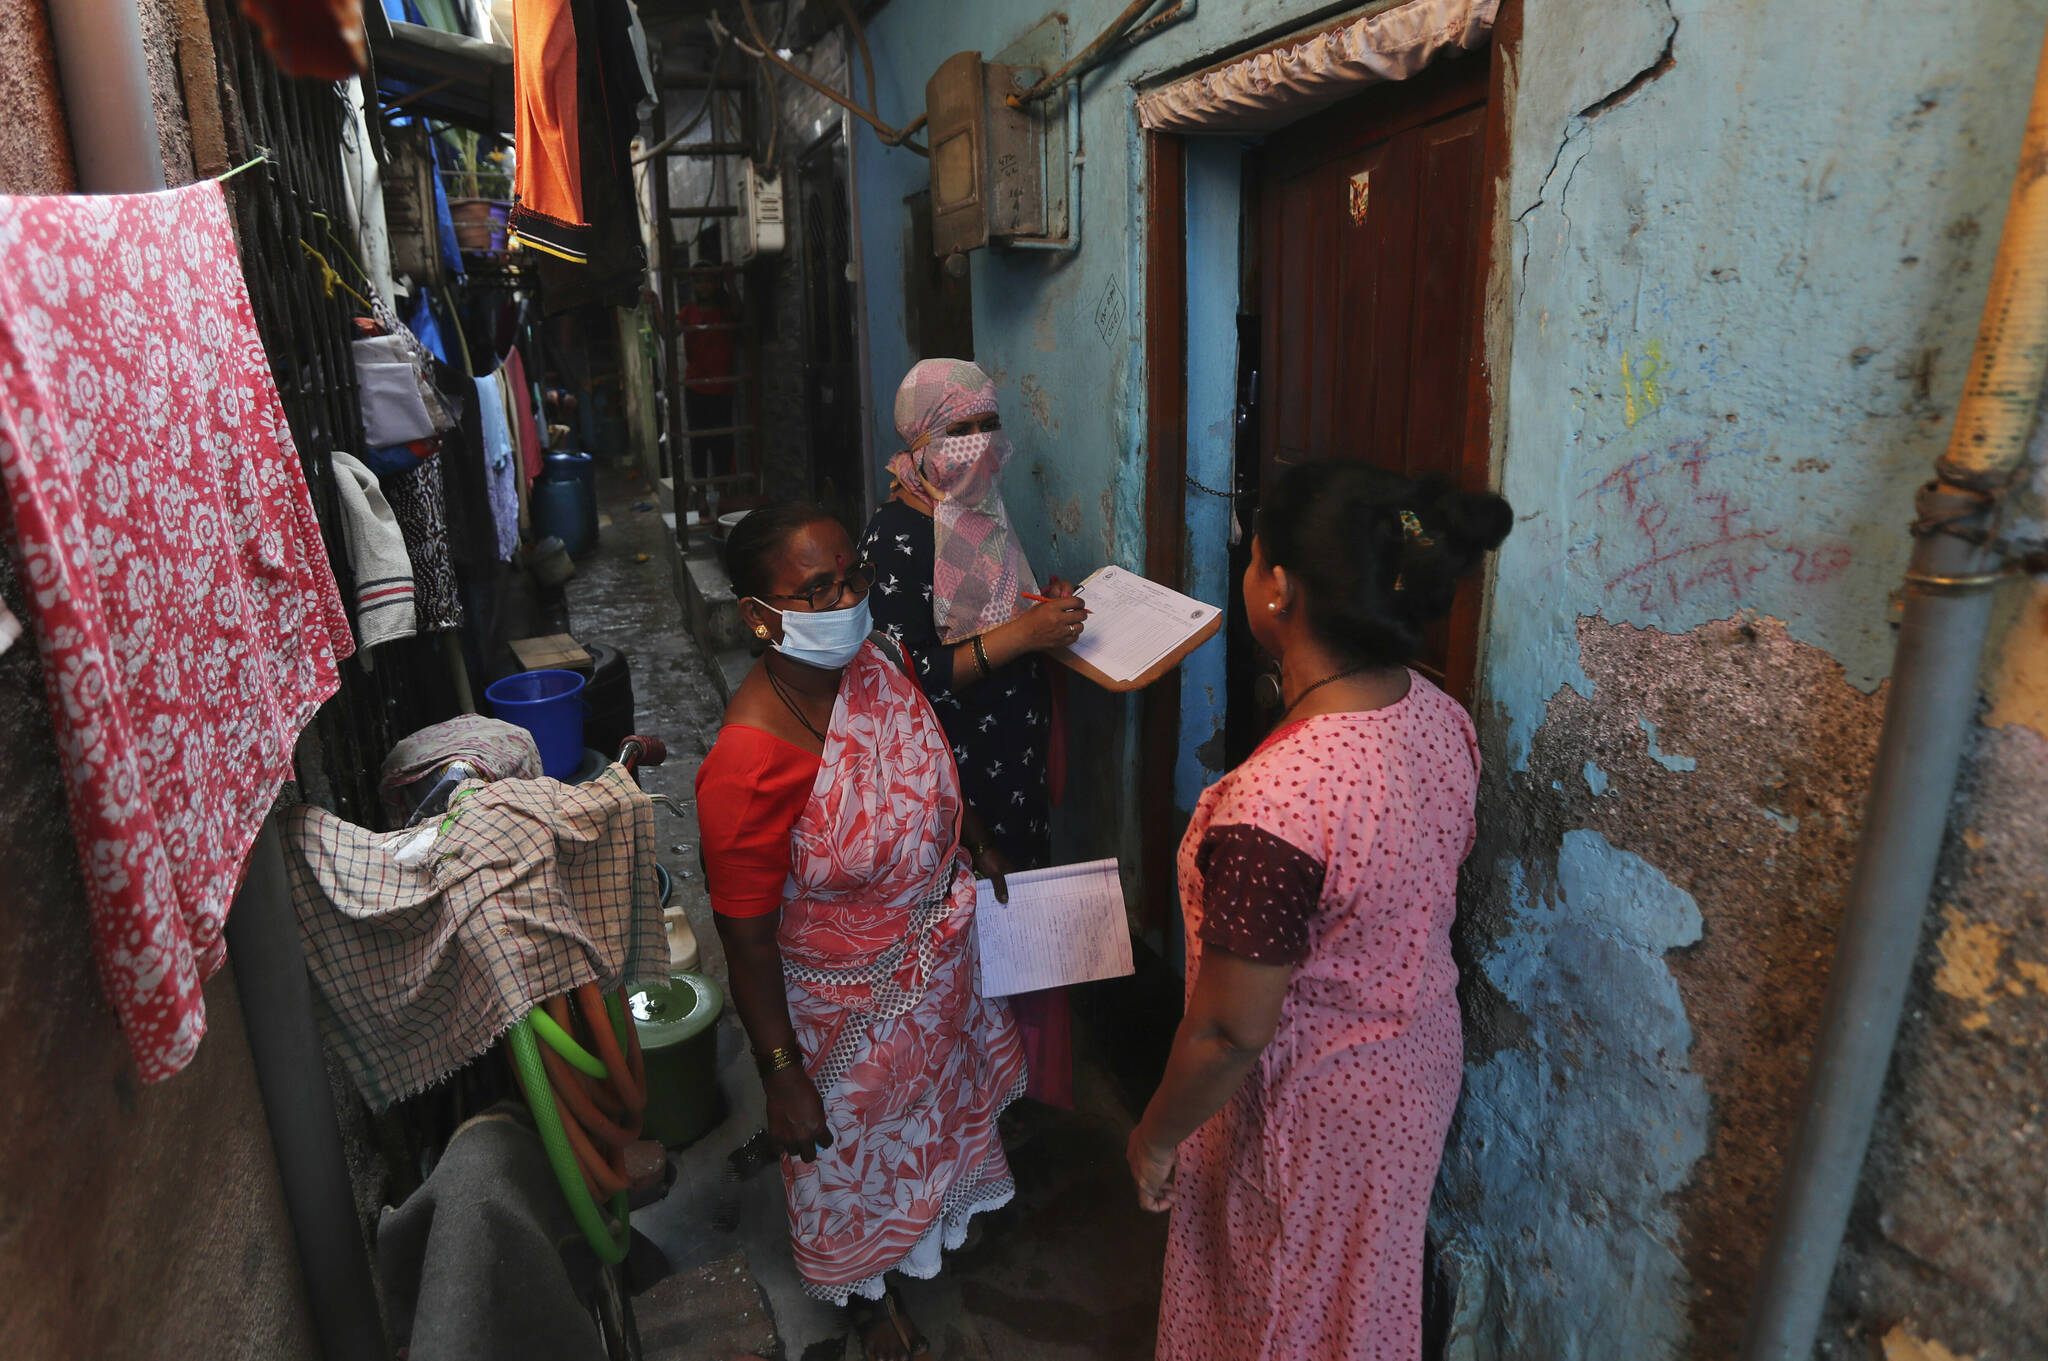 Health workers screen people for tuberculosis and leprosy in Dharavi, one of Asia's biggest slums, in Mumbai, India, Tuesday, Dec. 1, 2020. (AP Photo/Rafiq Maqbool)